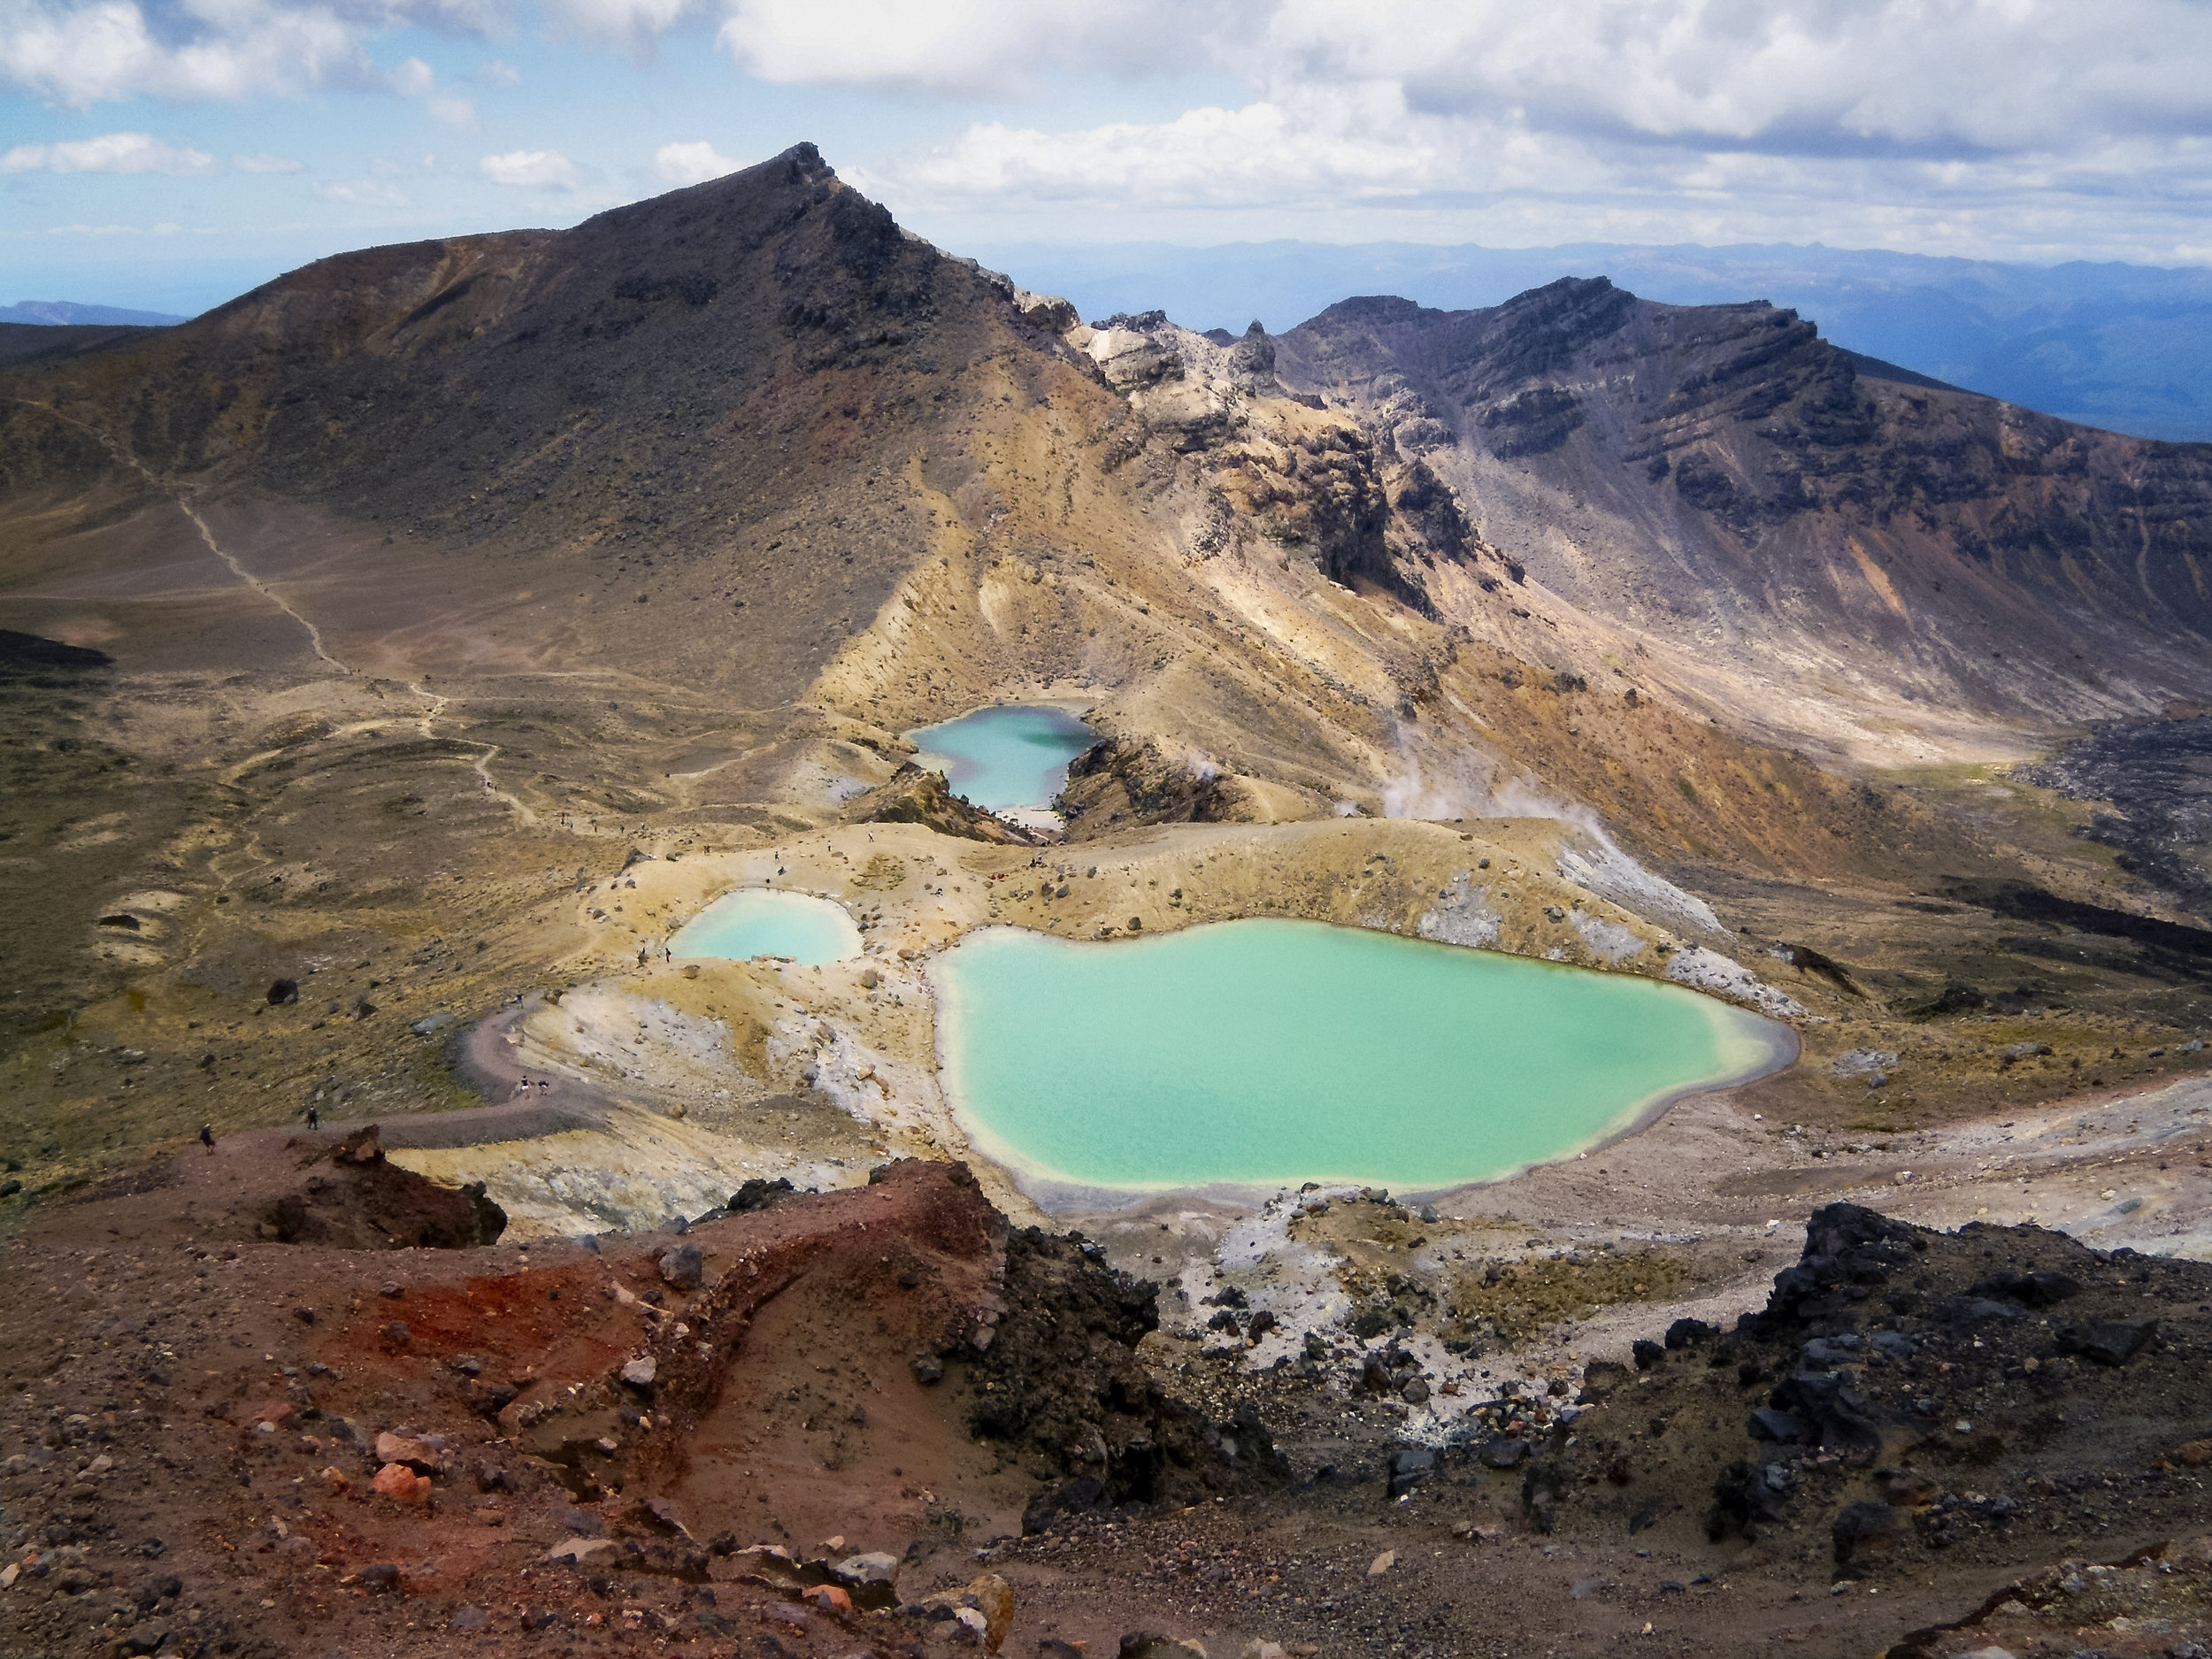 Ruapehu_District,_Manawatu-Wanganui,_New_Zealand_-_panoramio_(1).jpg